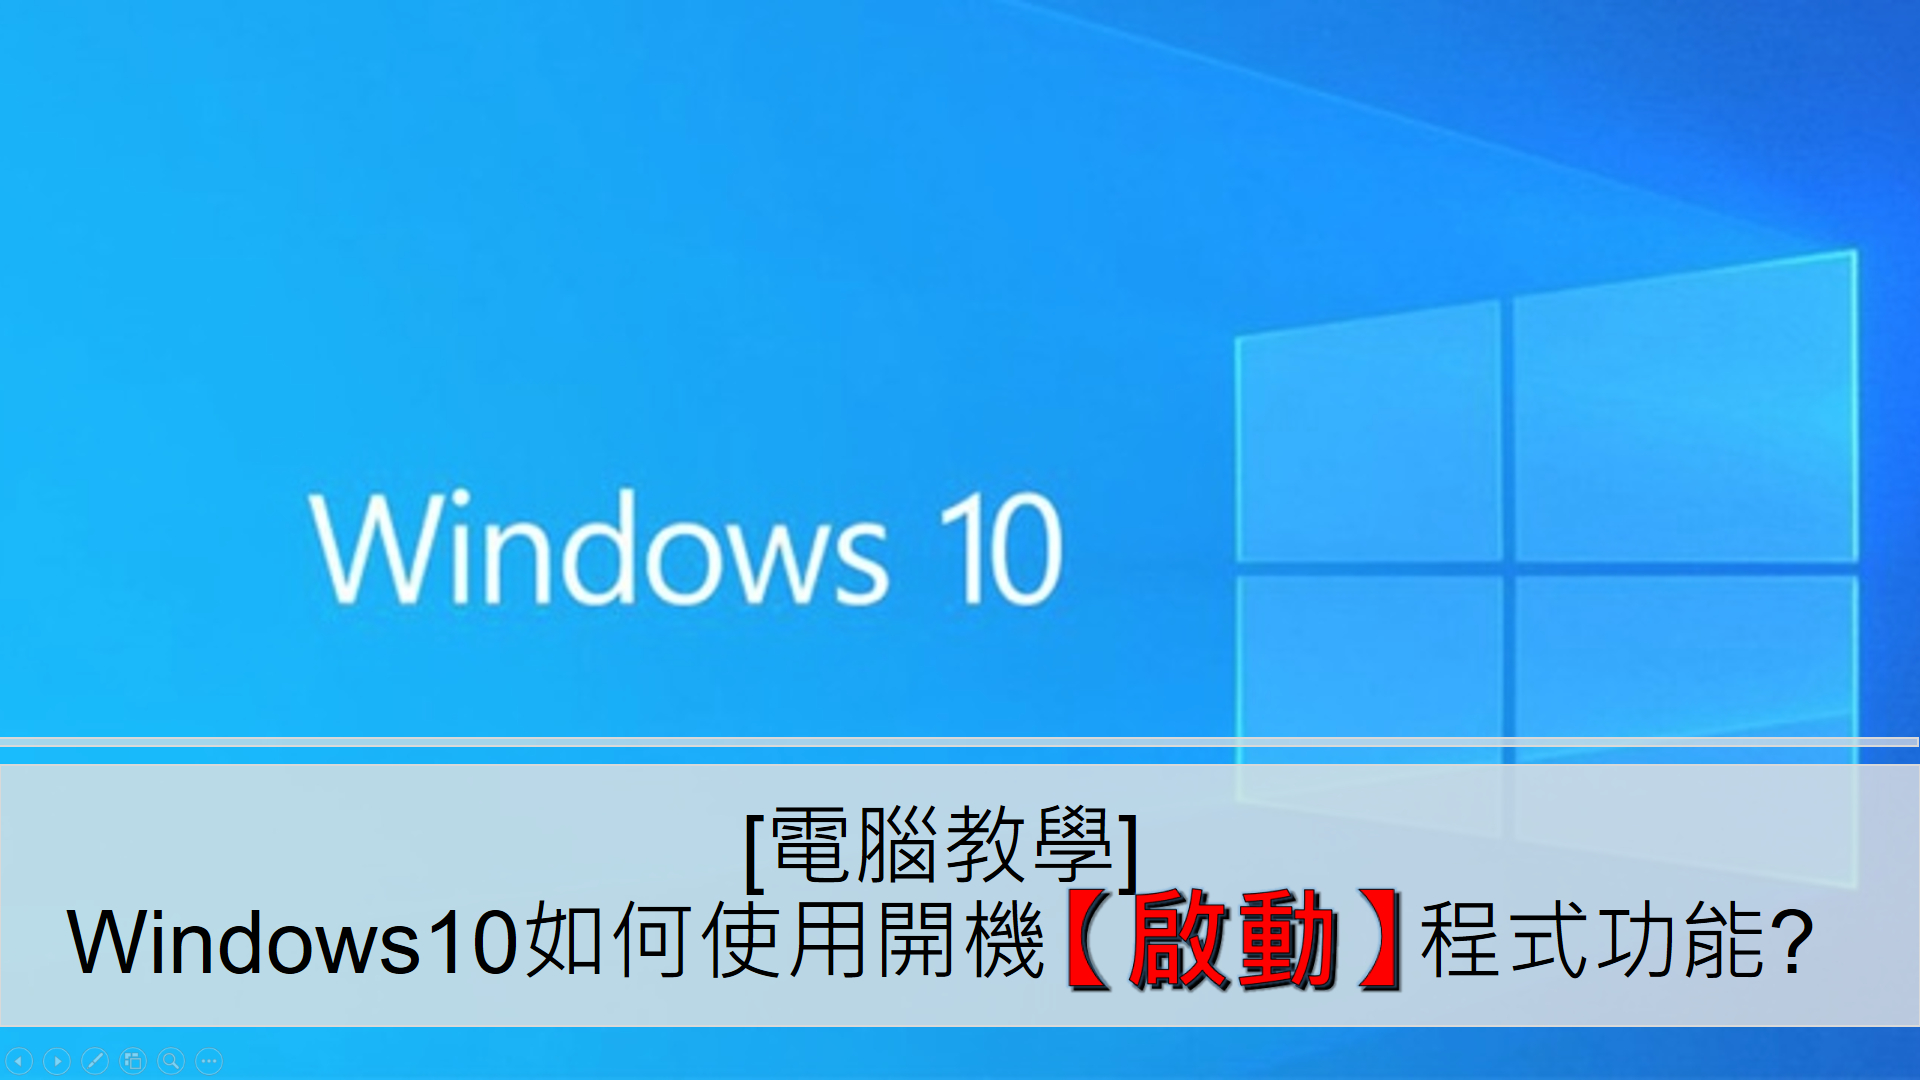 Windows 10 Startup Function Introduction